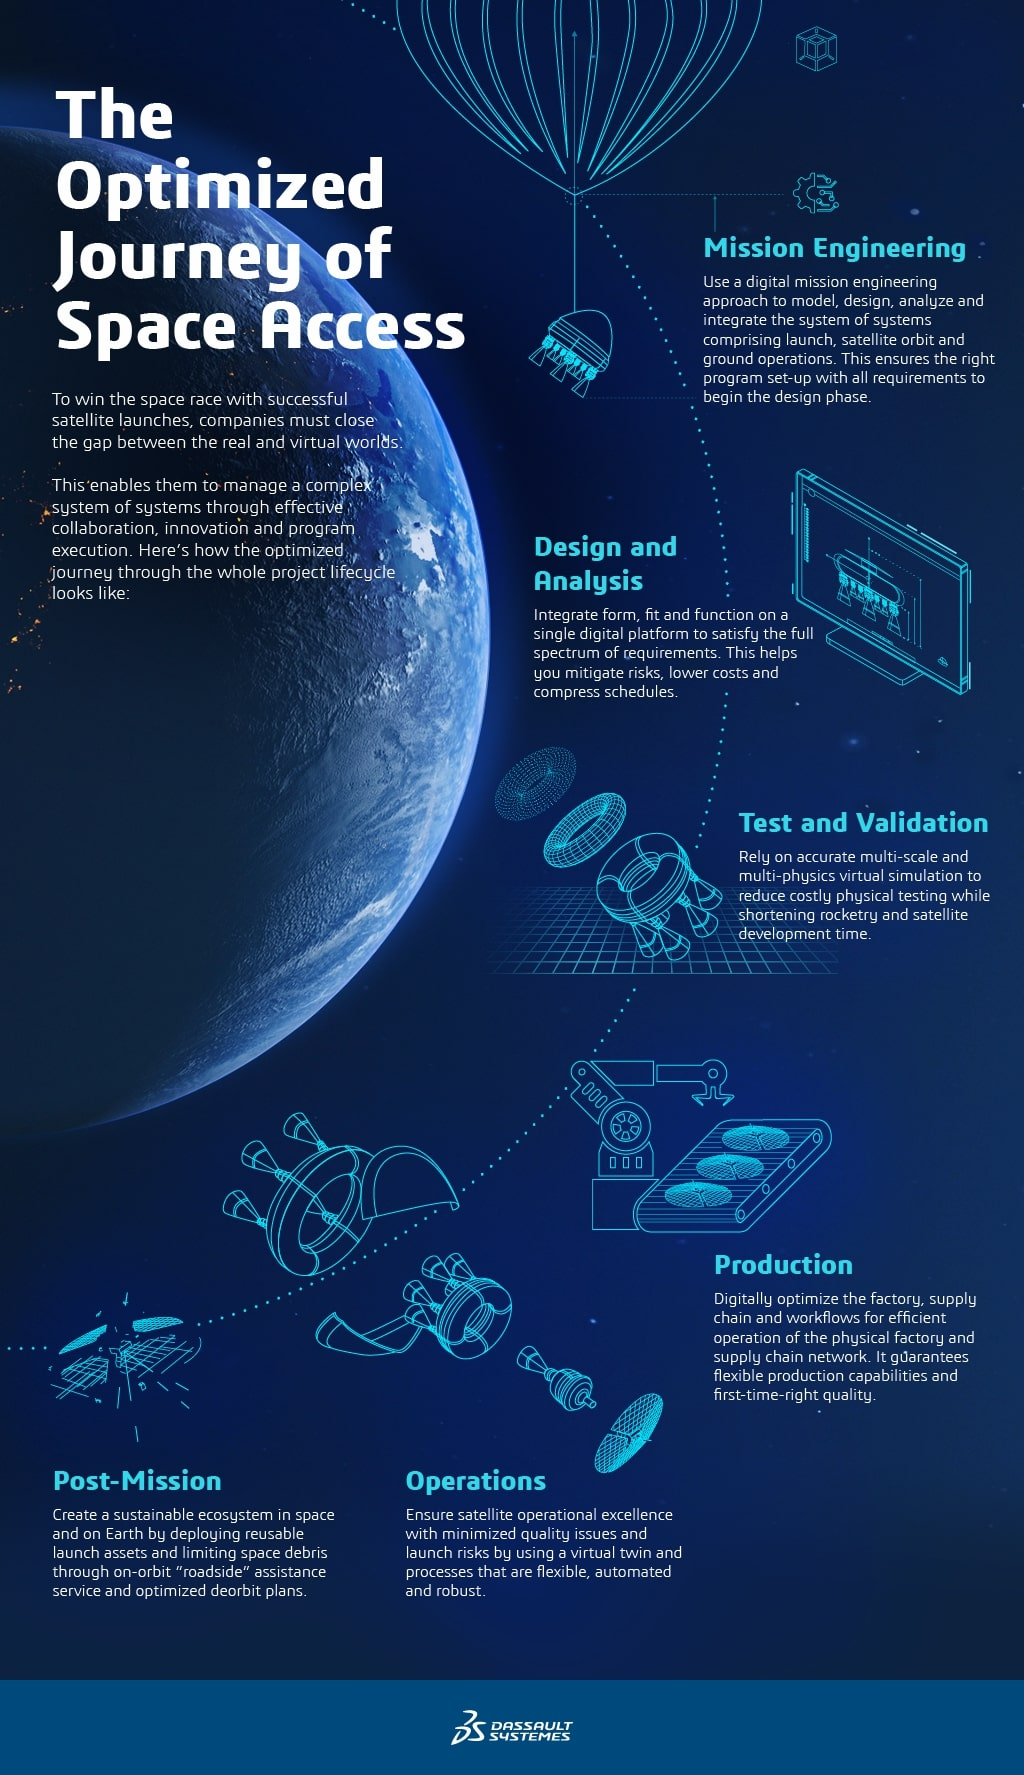 The New Frontier of Satellite Technology > Optimized journey of space access infographic > Dassault Systèmes®